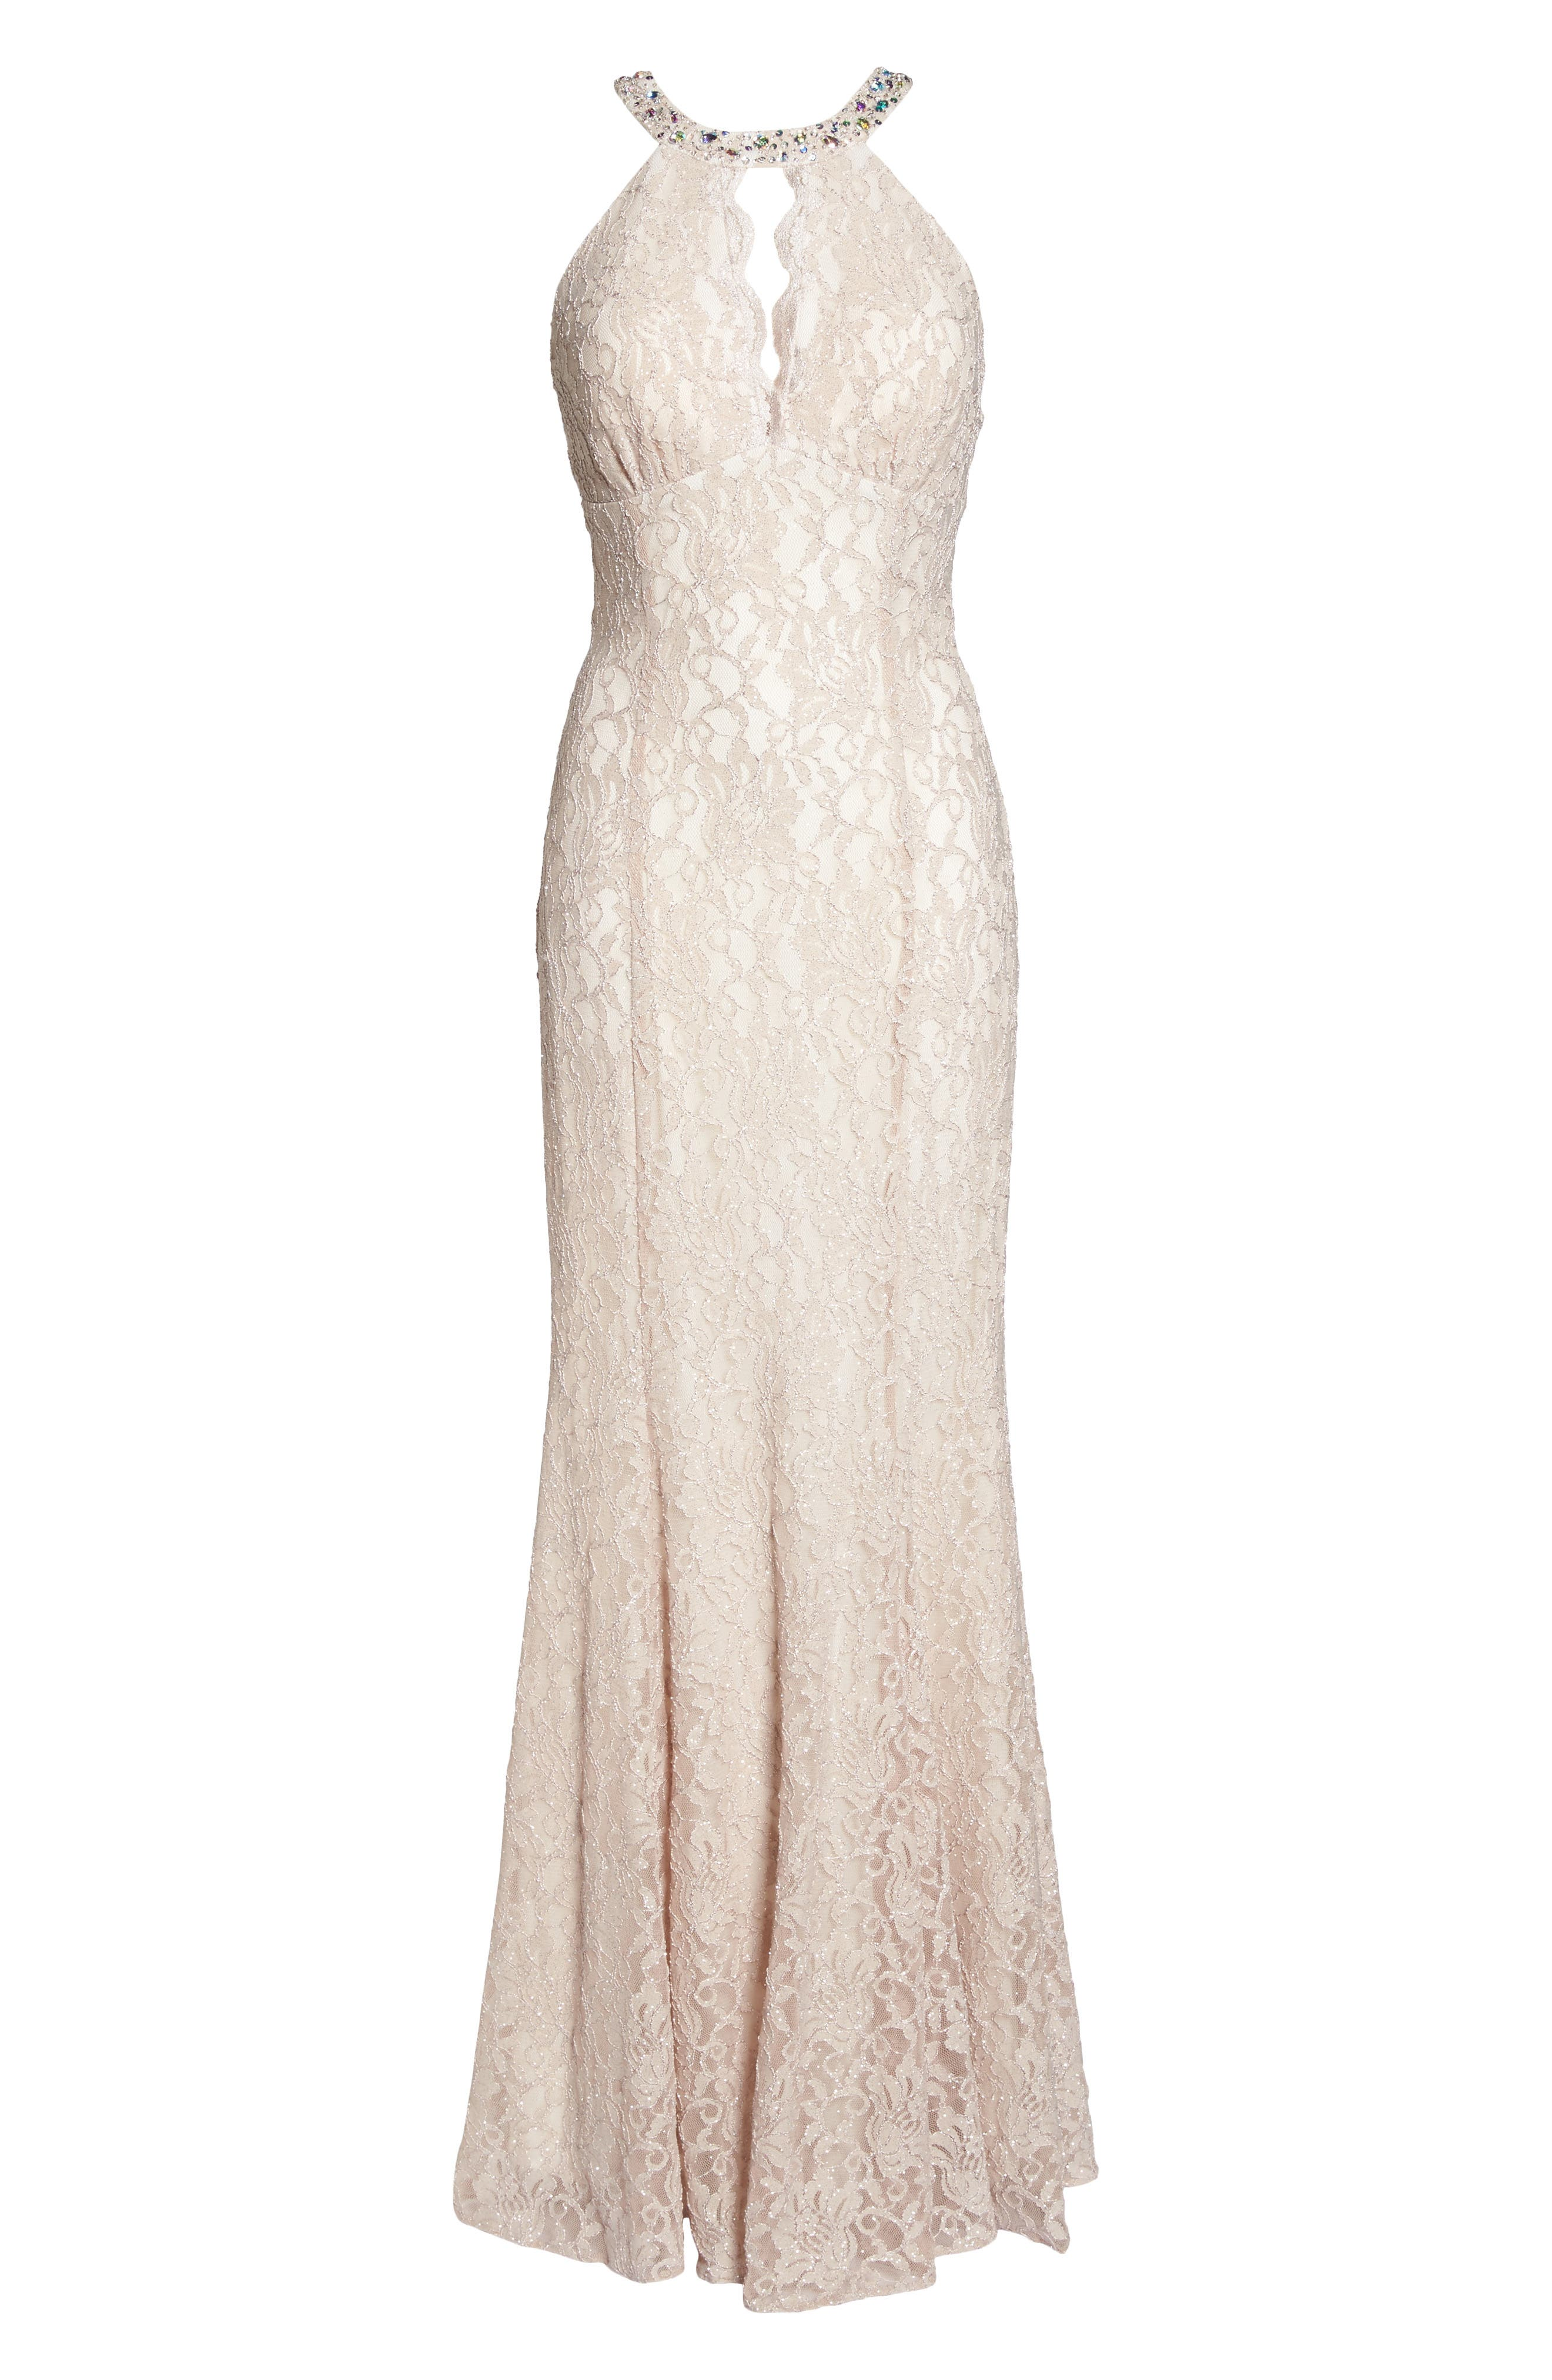 Embellished Lace Gown,                             Alternate thumbnail 6, color,                             252